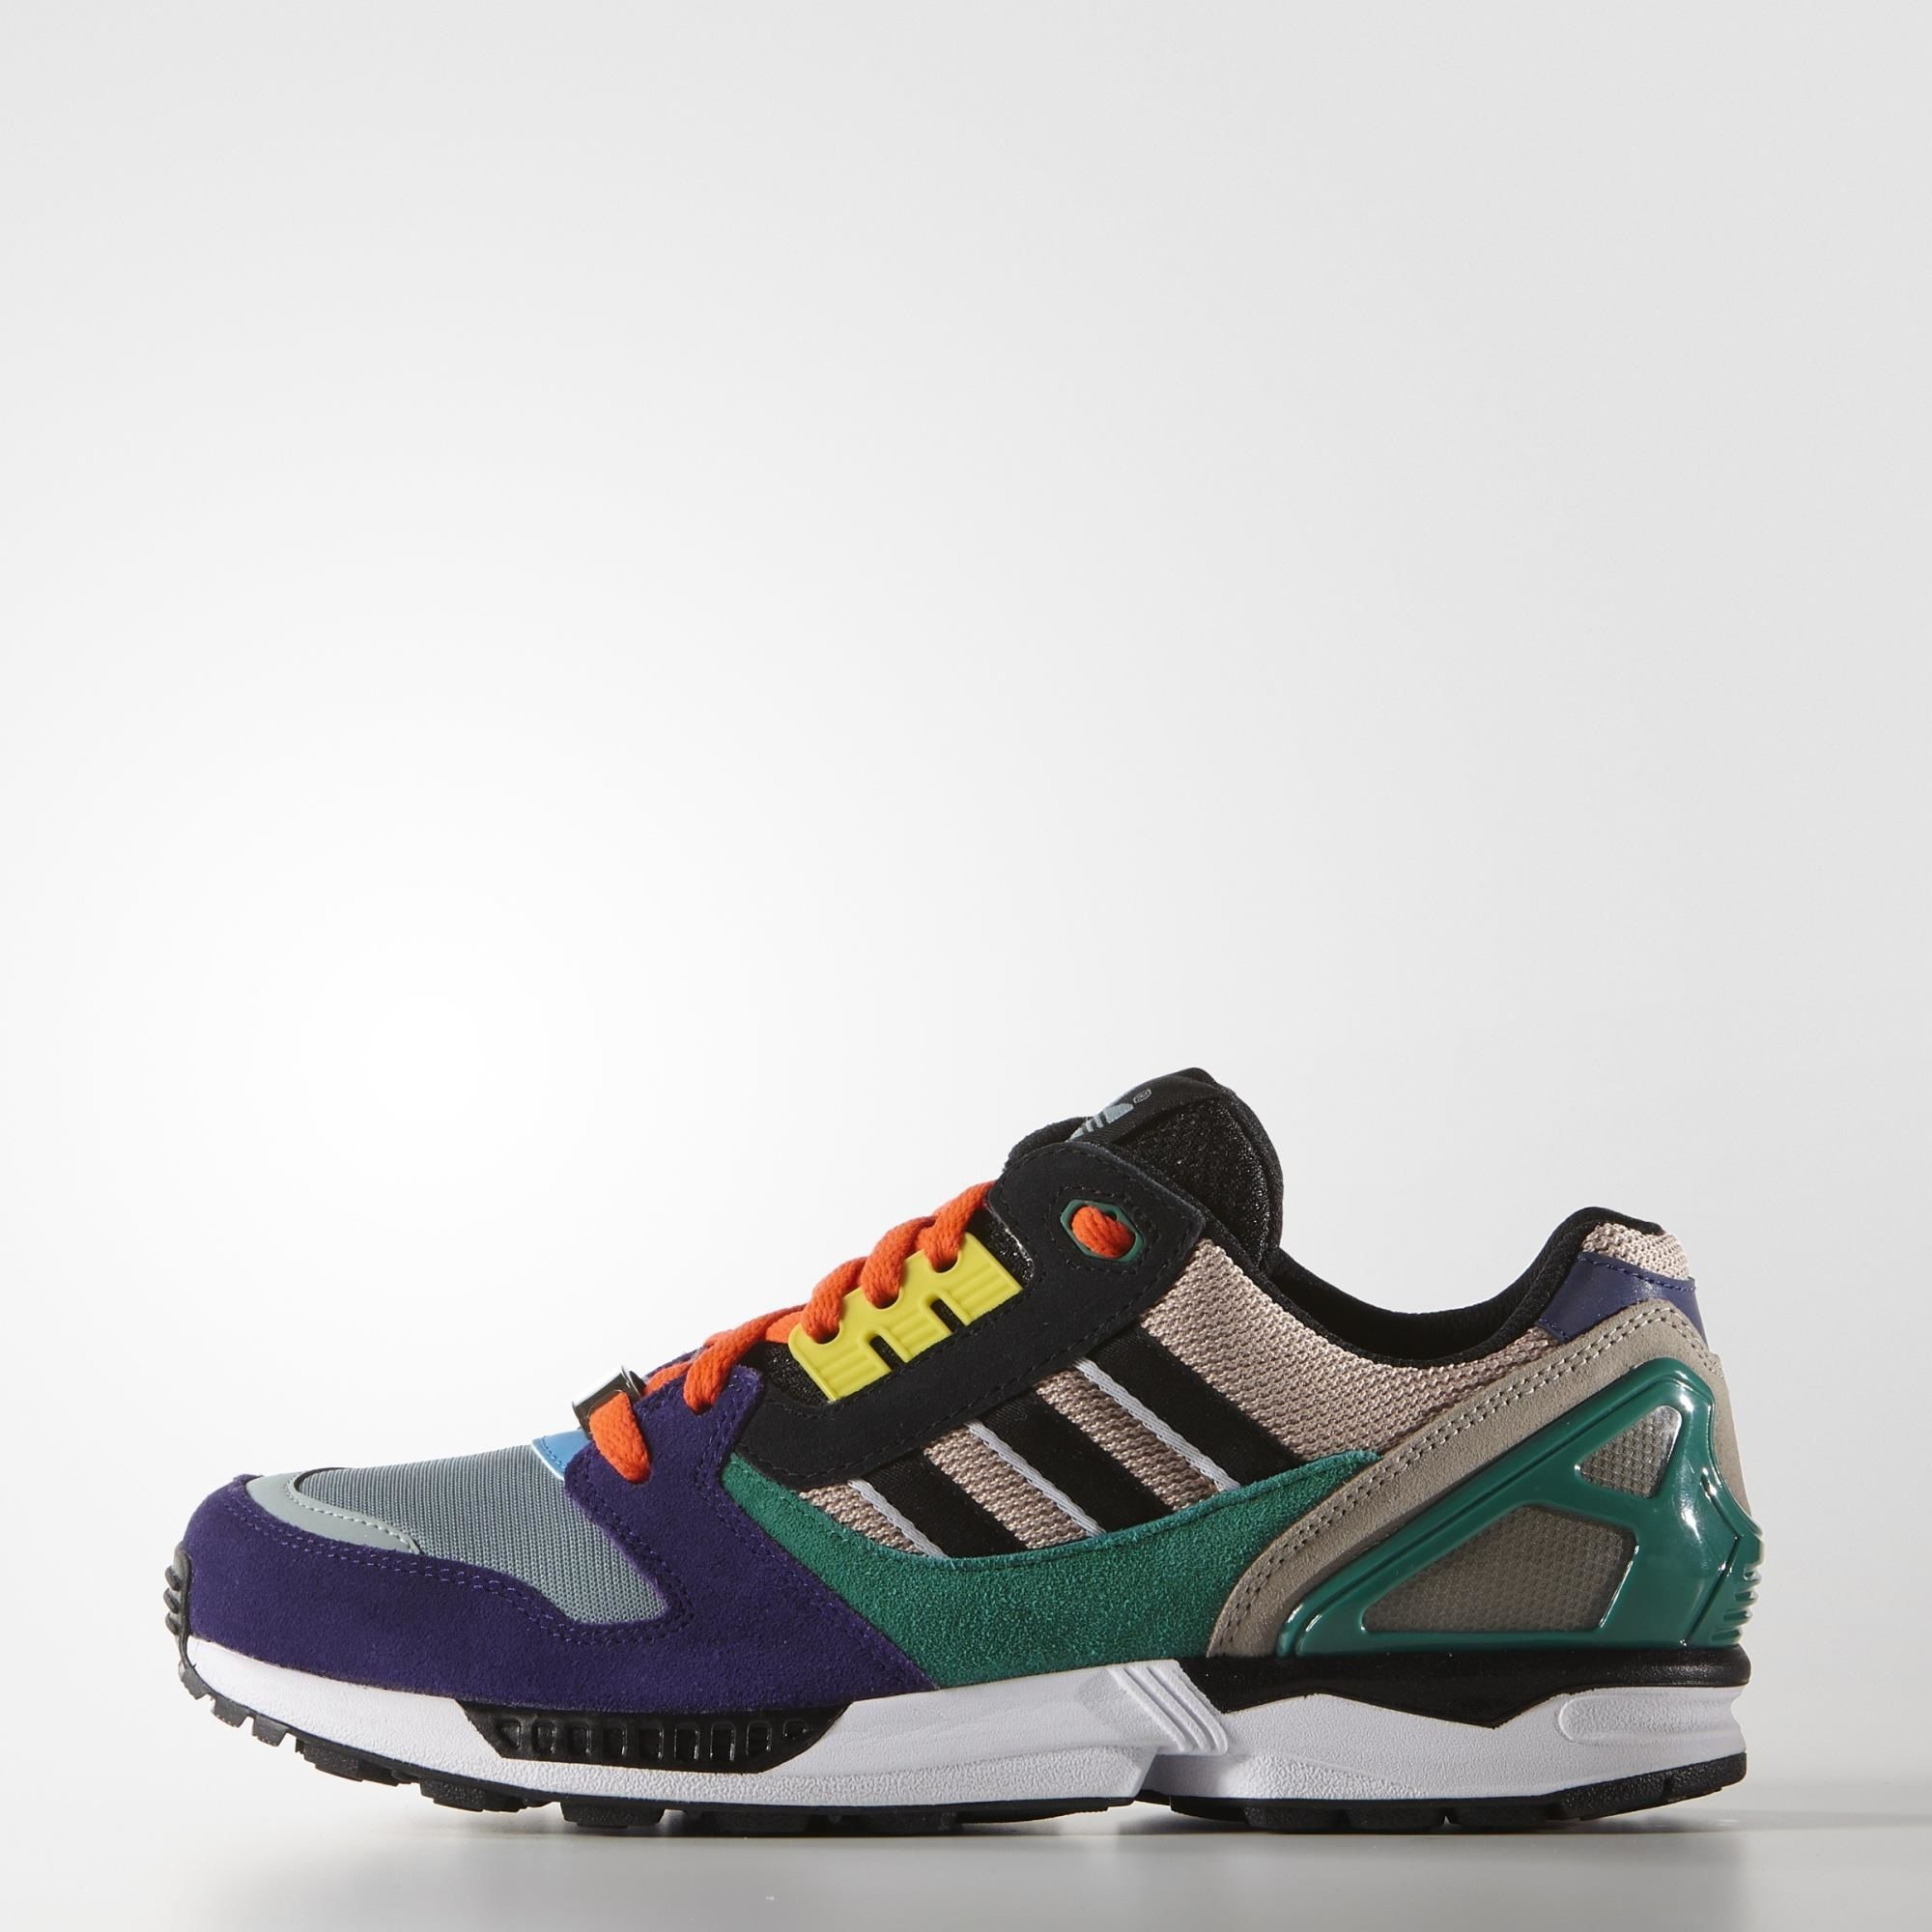 66a1579ebf adidas ZX 8000 Shoes - Dust Pearl | adidas UK | Things to Wear ...